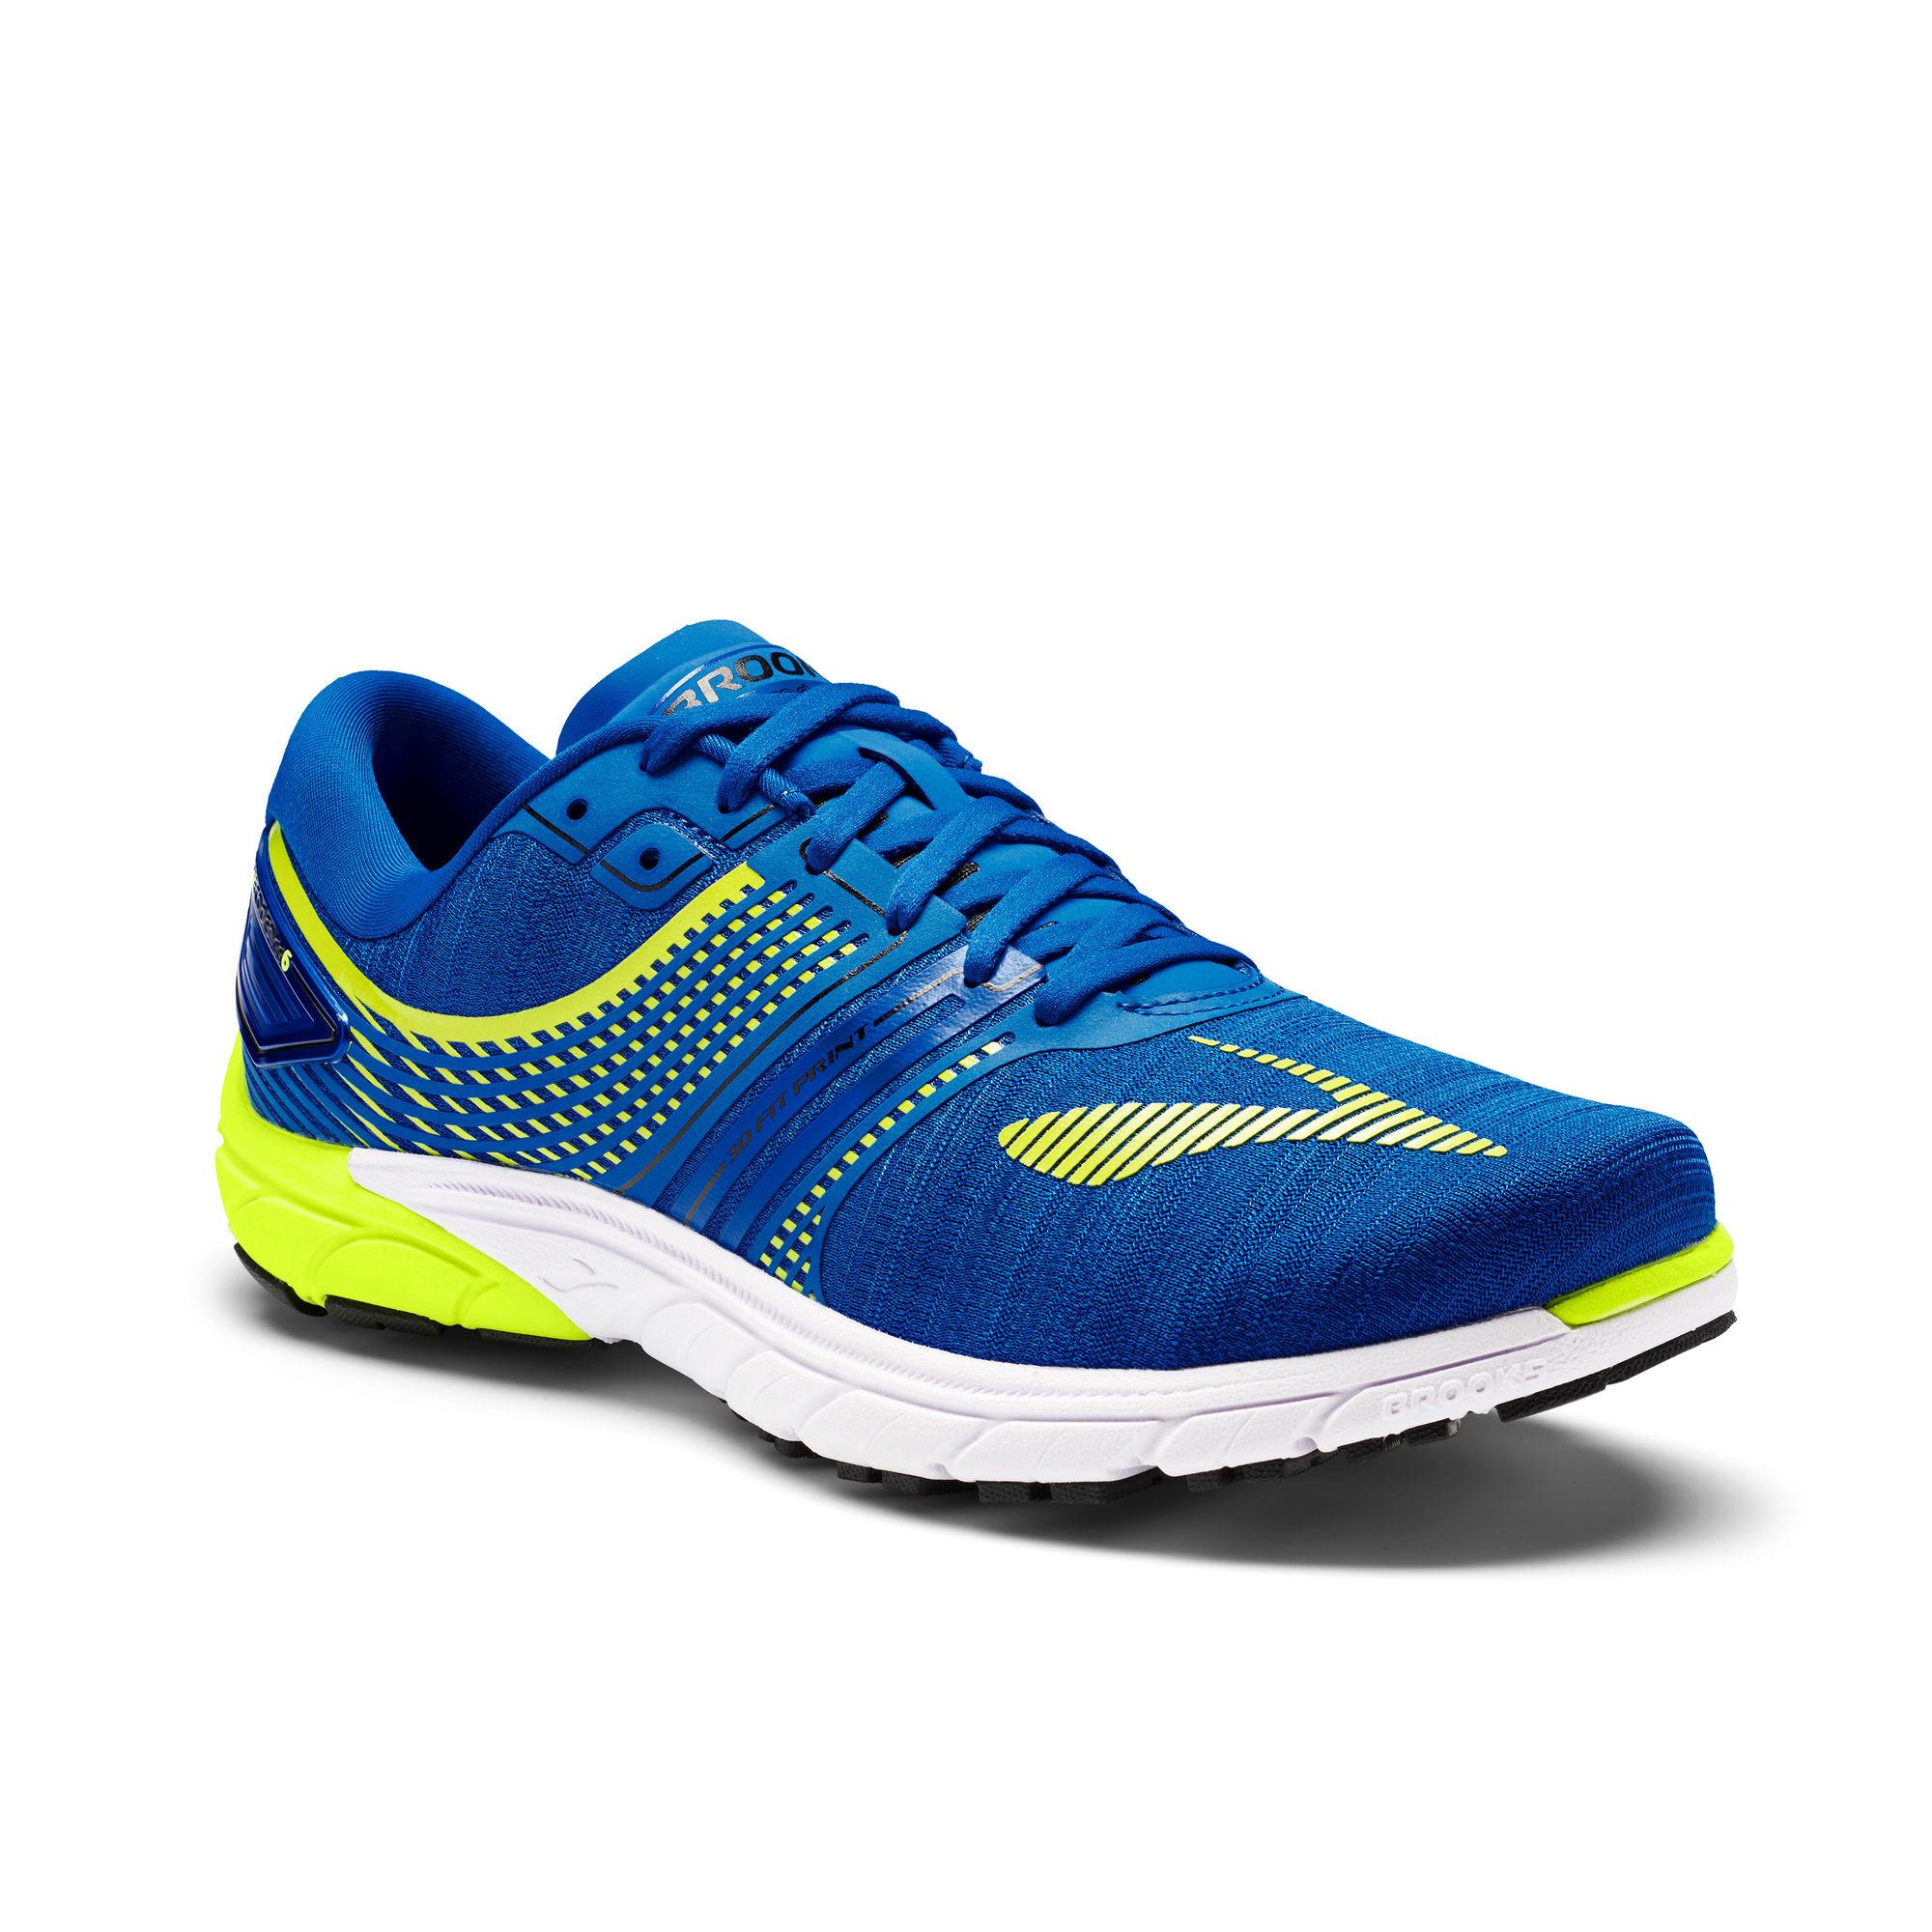 Brooks PureCadence 6 in Grau